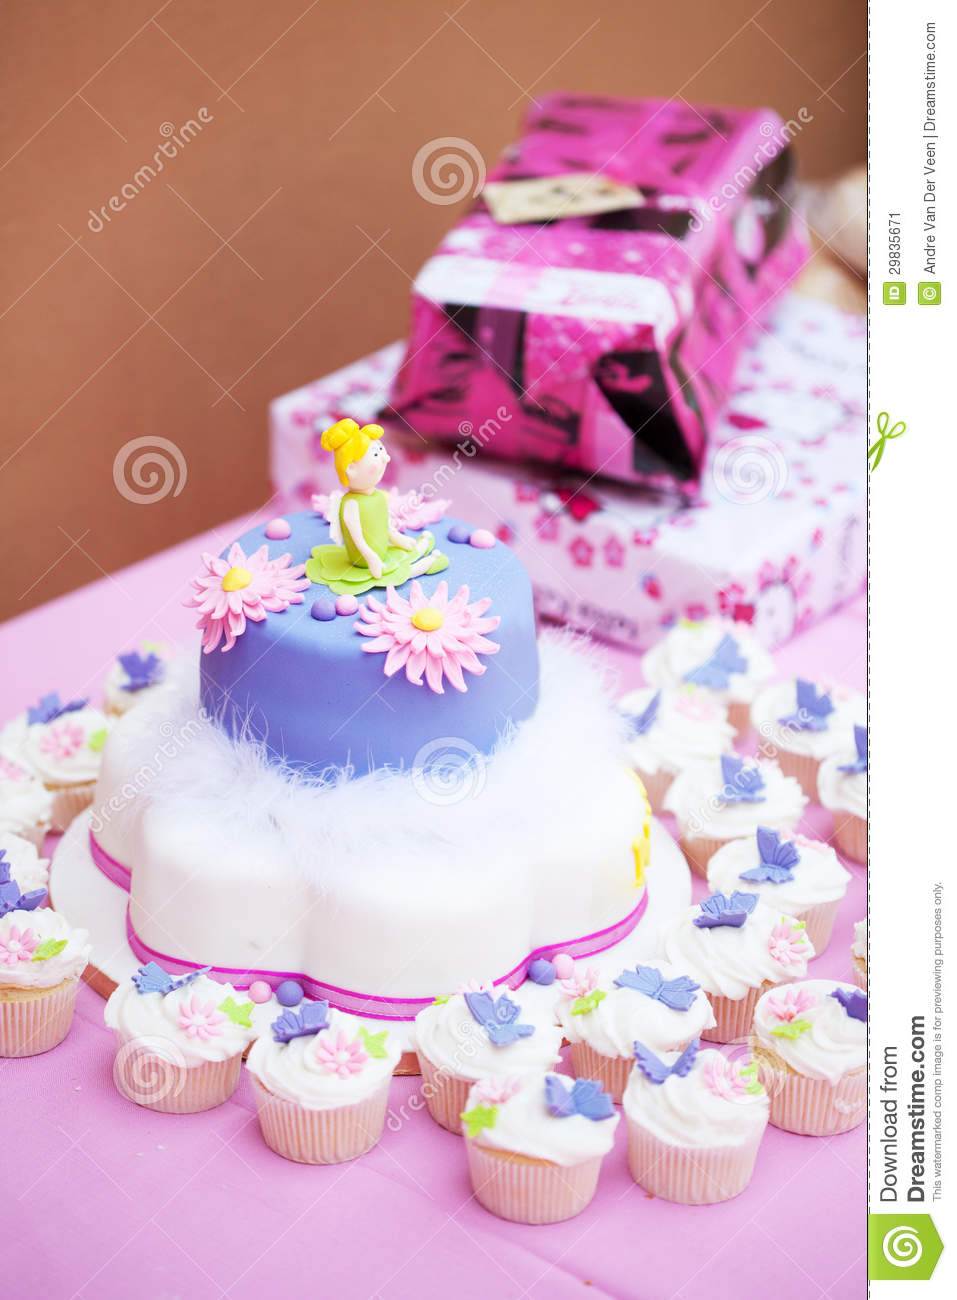 Decorated Birthday Cake For A Little Girl Stock Image - Image ...